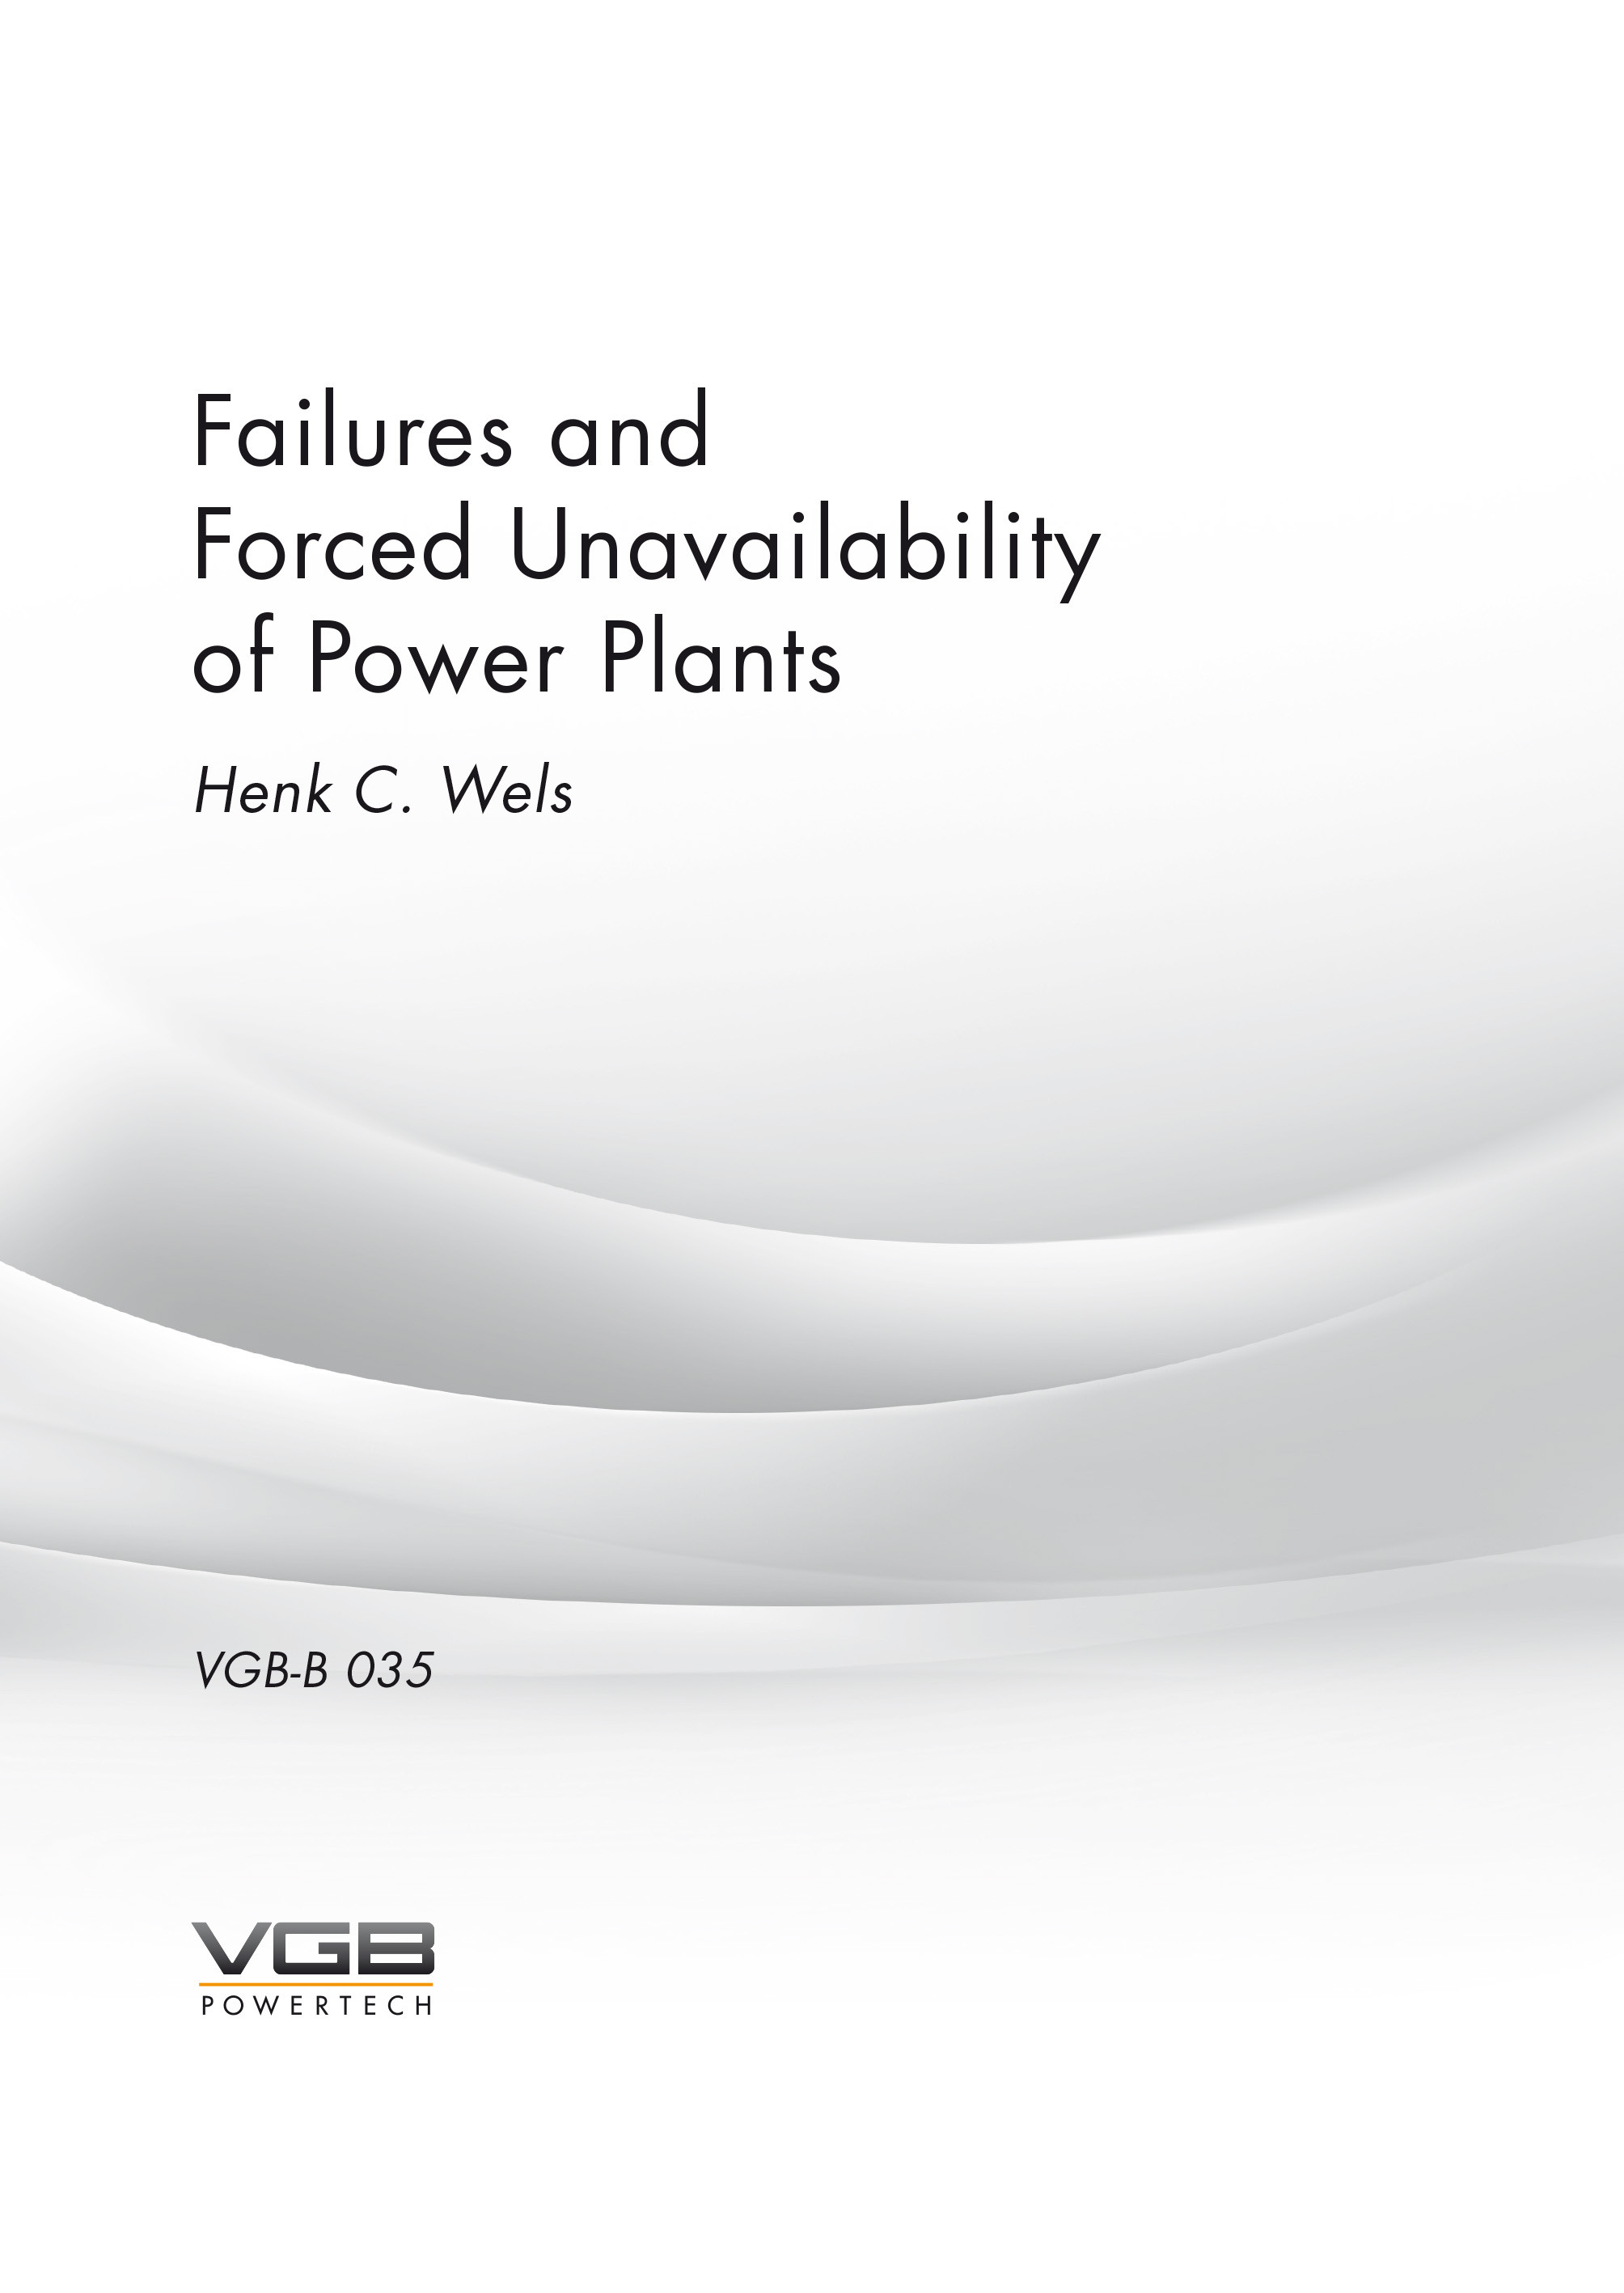 Failures and Forced Unavailability of Power Plants (Henk C. Wels)